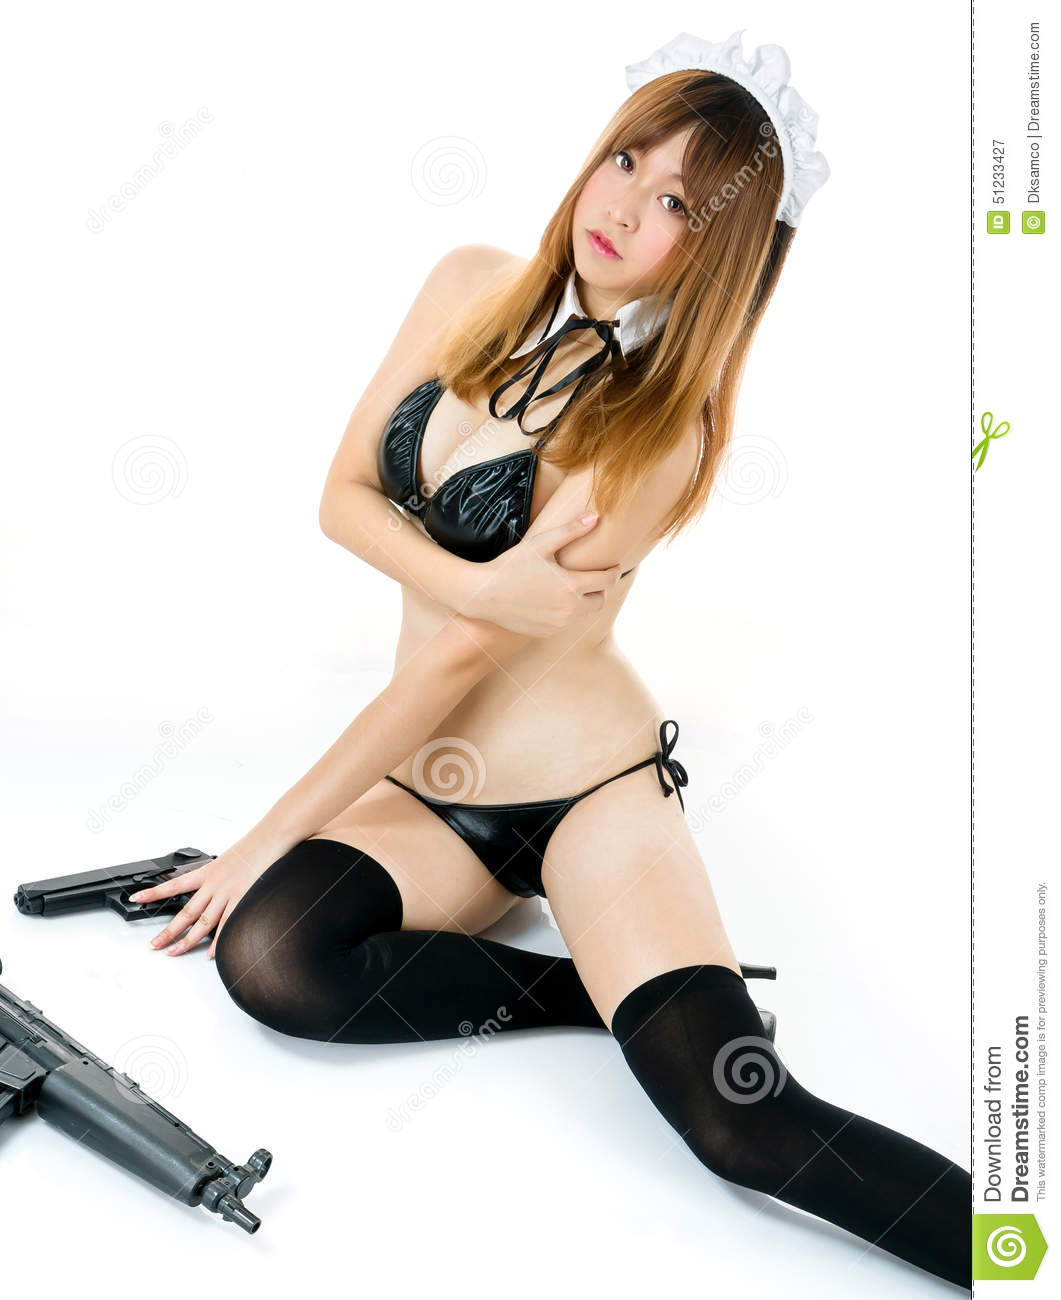 For Cosplay girl with gun about still